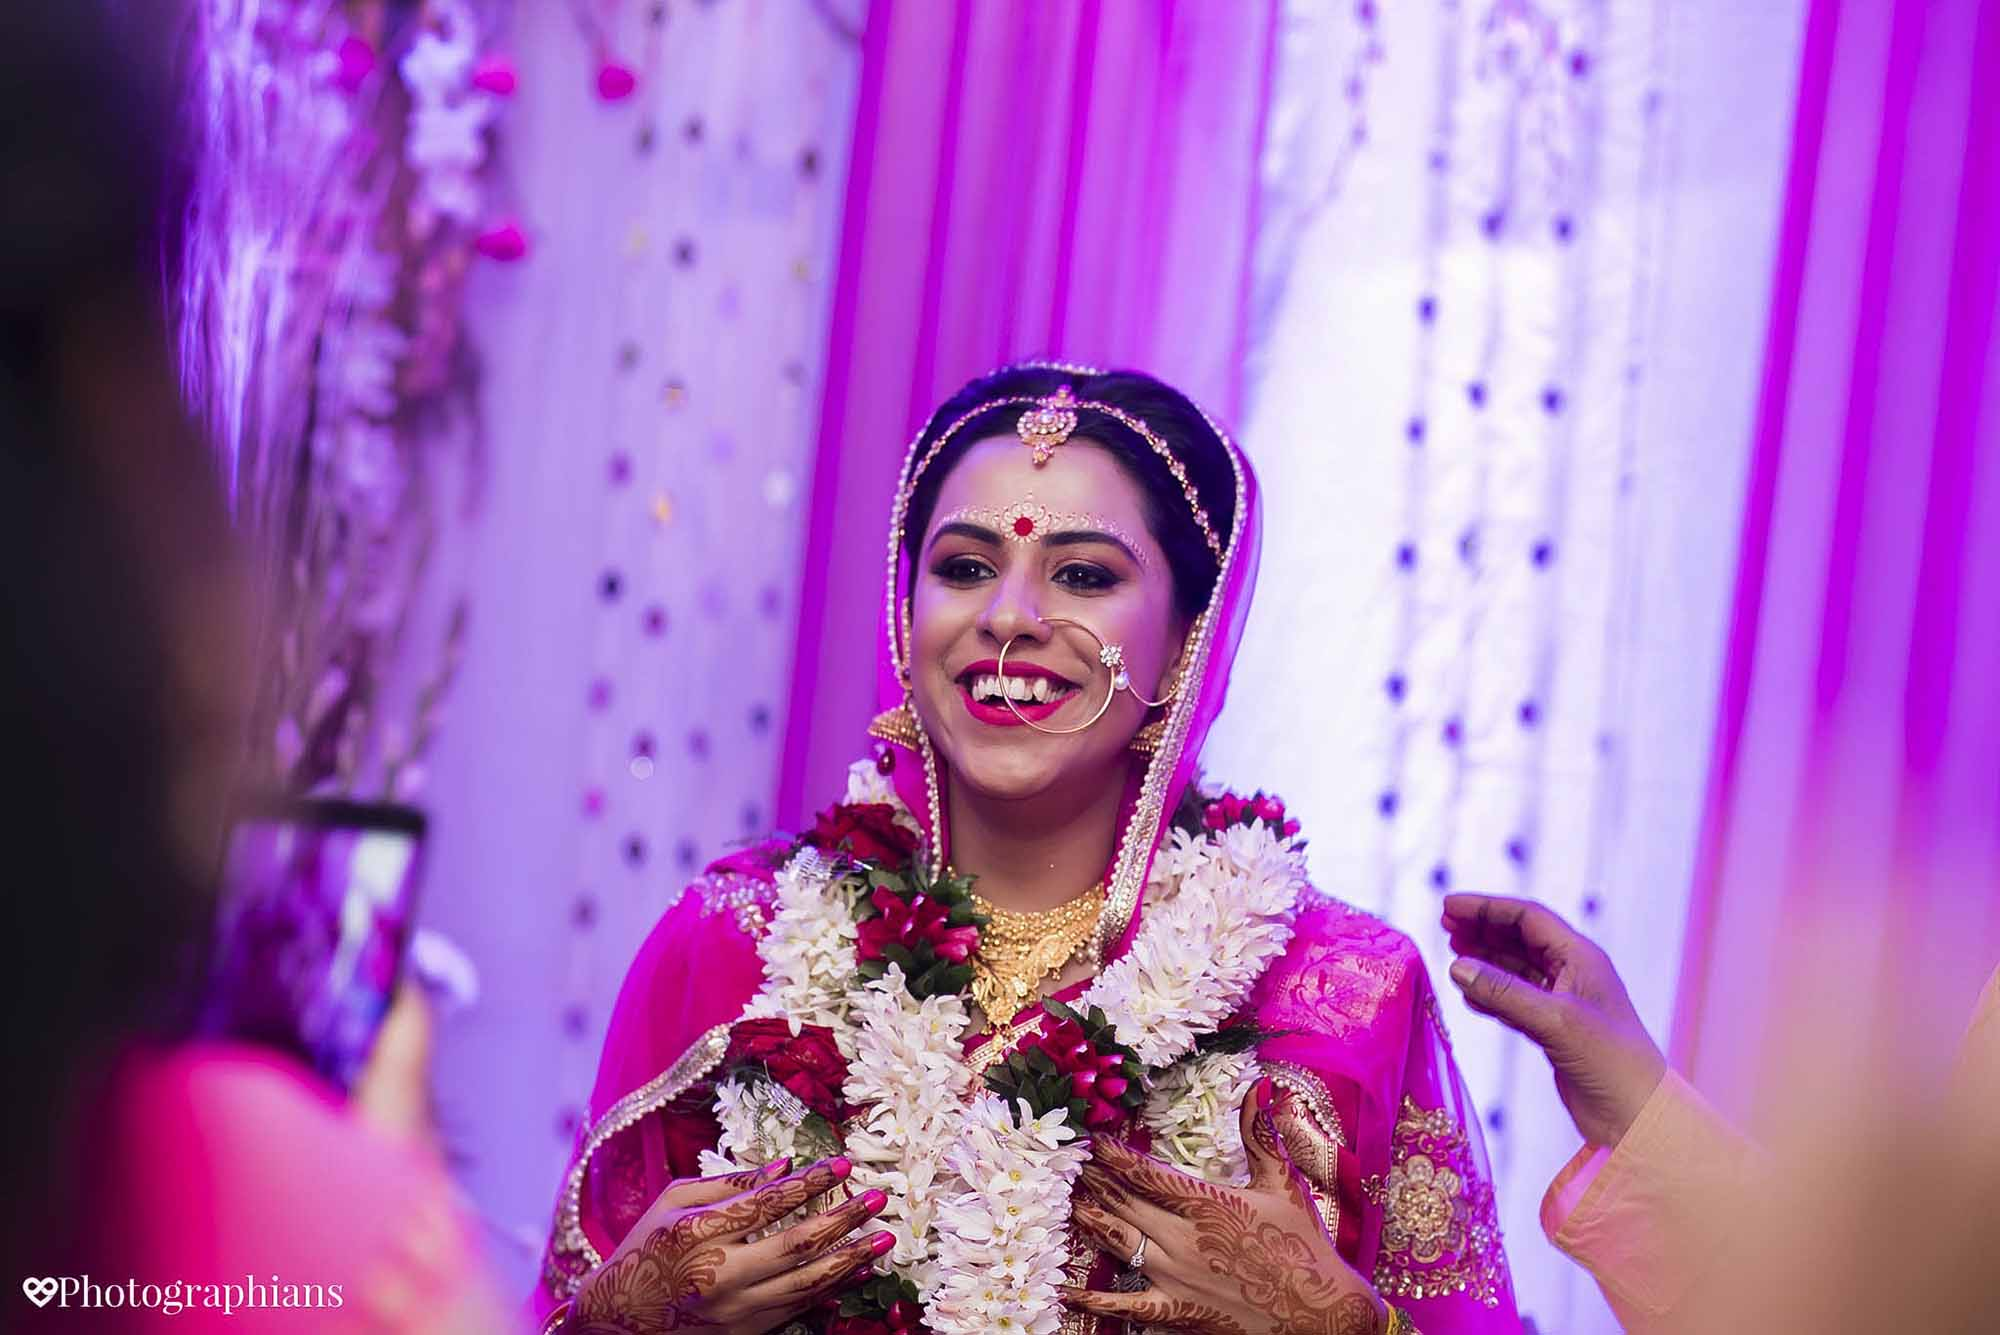 Bengali_Wedding_Photography_Kolkata_Photographians_173